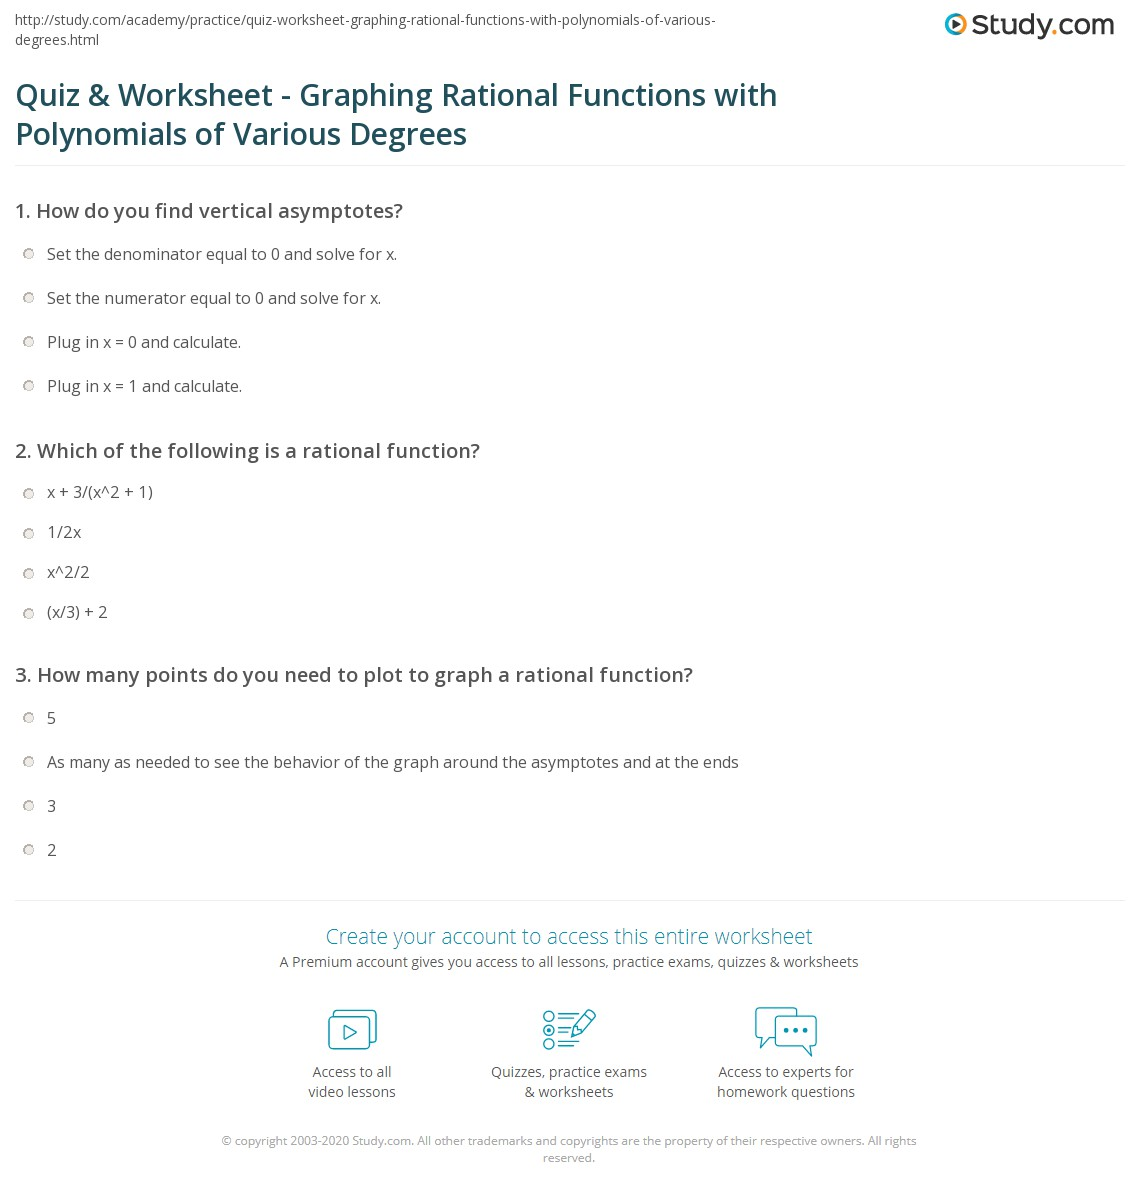 worksheet Graphing Polynomials Worksheet quiz worksheet graphing rational functions with polynomials of print that have various degrees steps examples worksheet